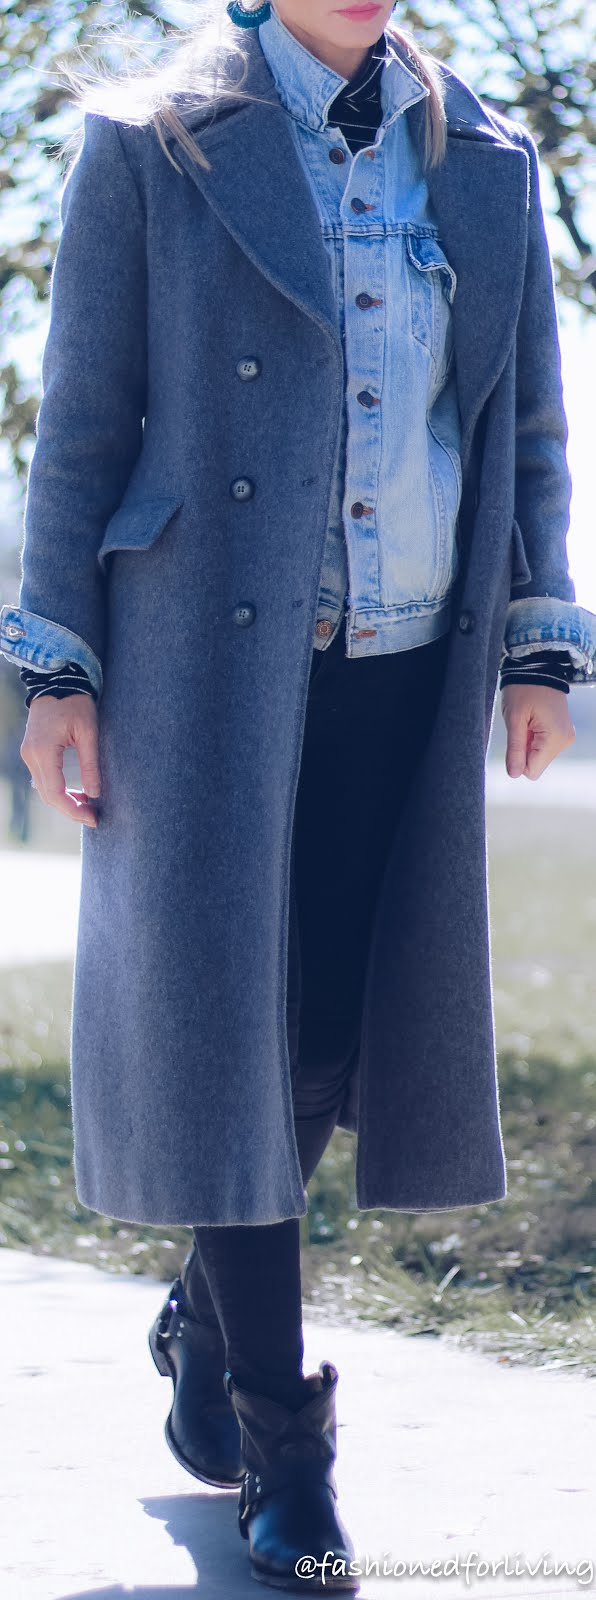 winter denim jacket outfit